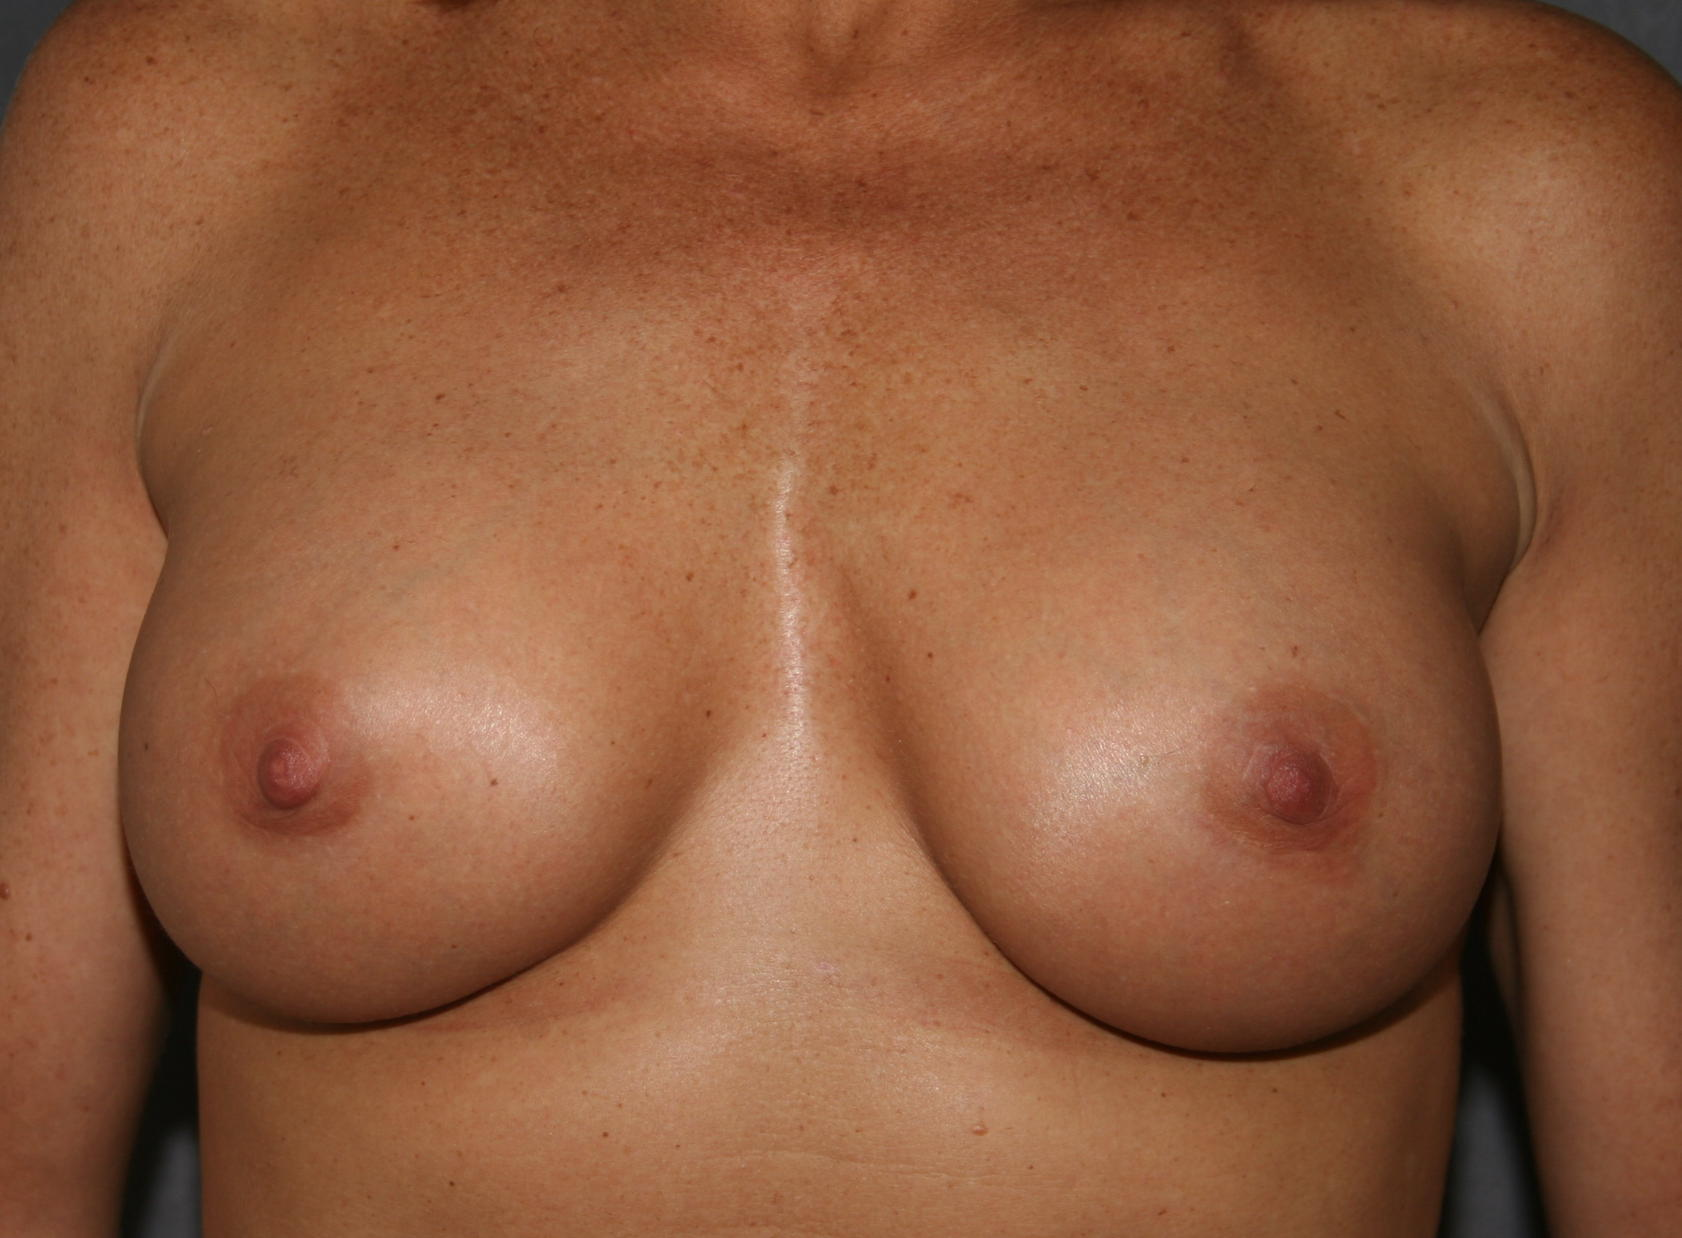 After breast augmentation. Breast implant diameter was selected to enhance cleavage without overly enhancing width.